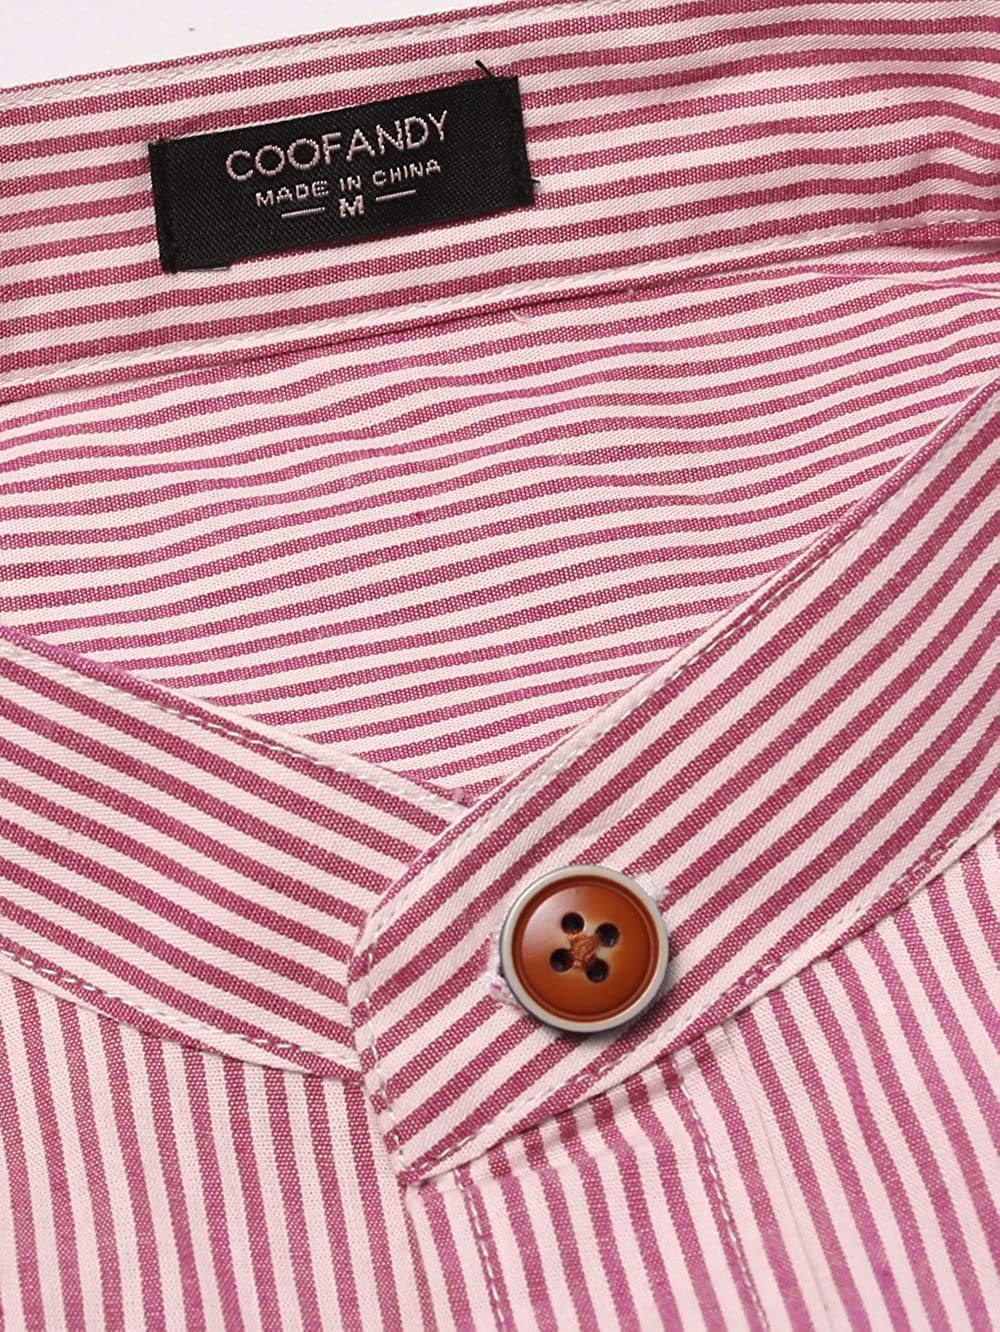 COOFANDY Mens Slim Fit Banded Collar Dress Shirt Casual Long Sleeve Striped Button Down Shirt